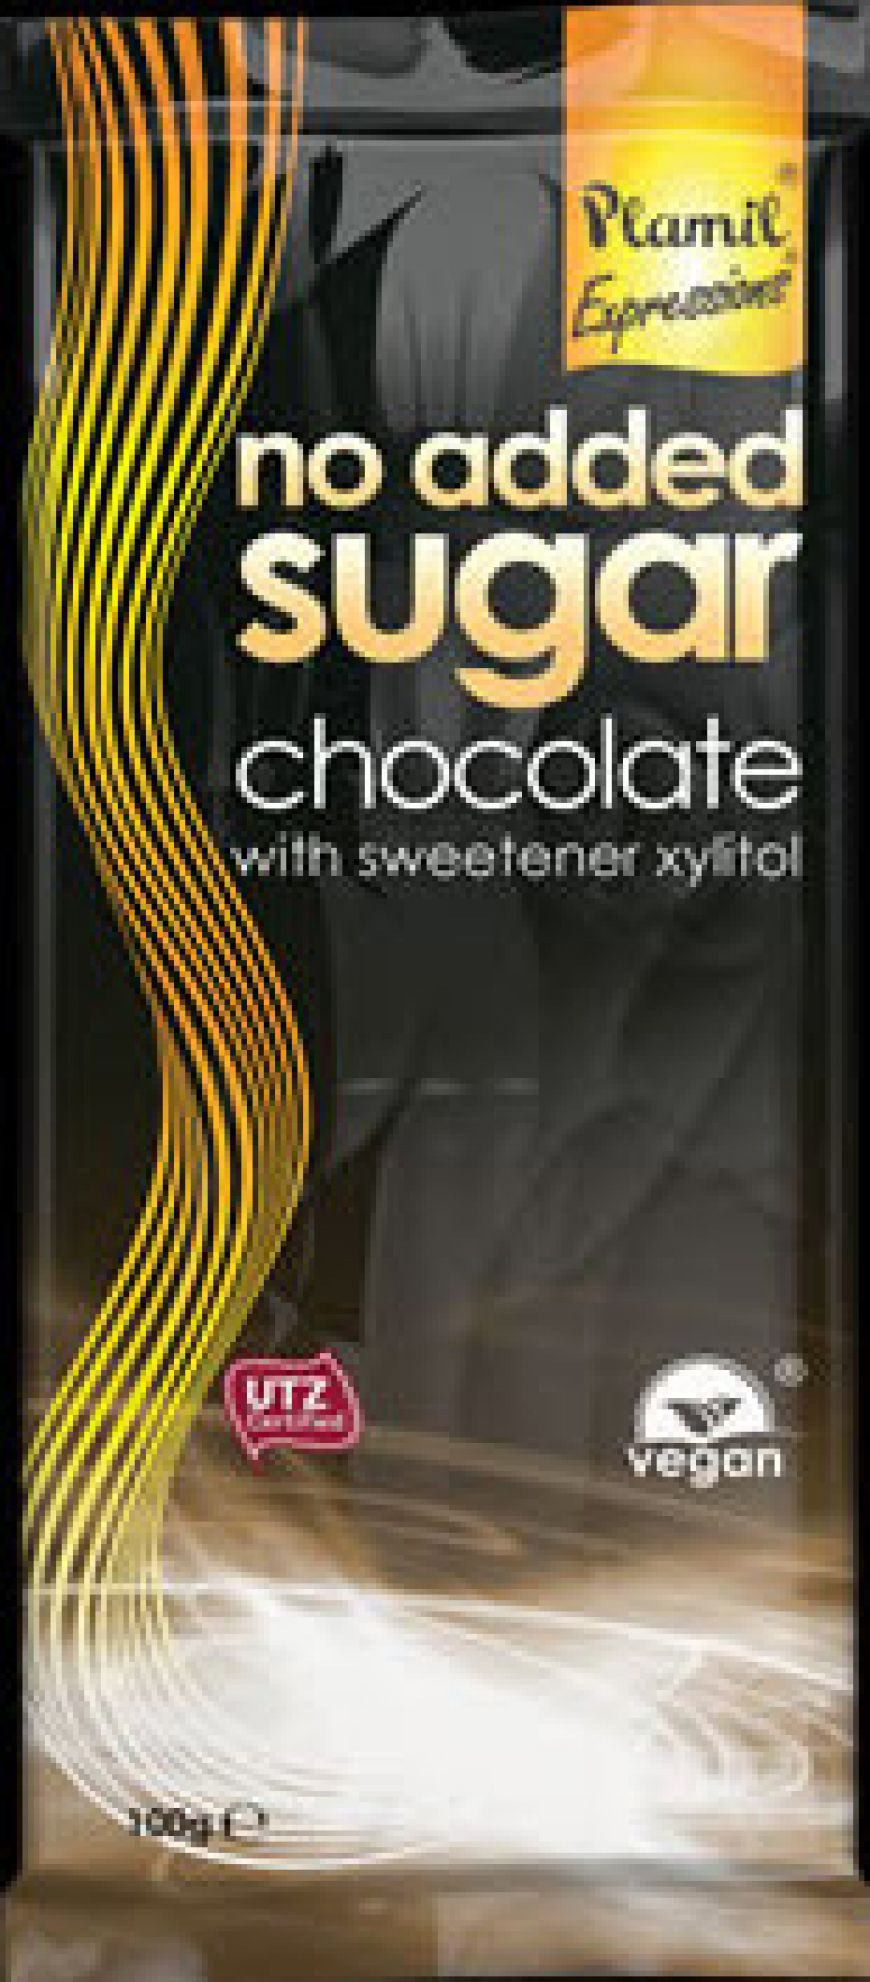 Plamil Chocolate Front Label